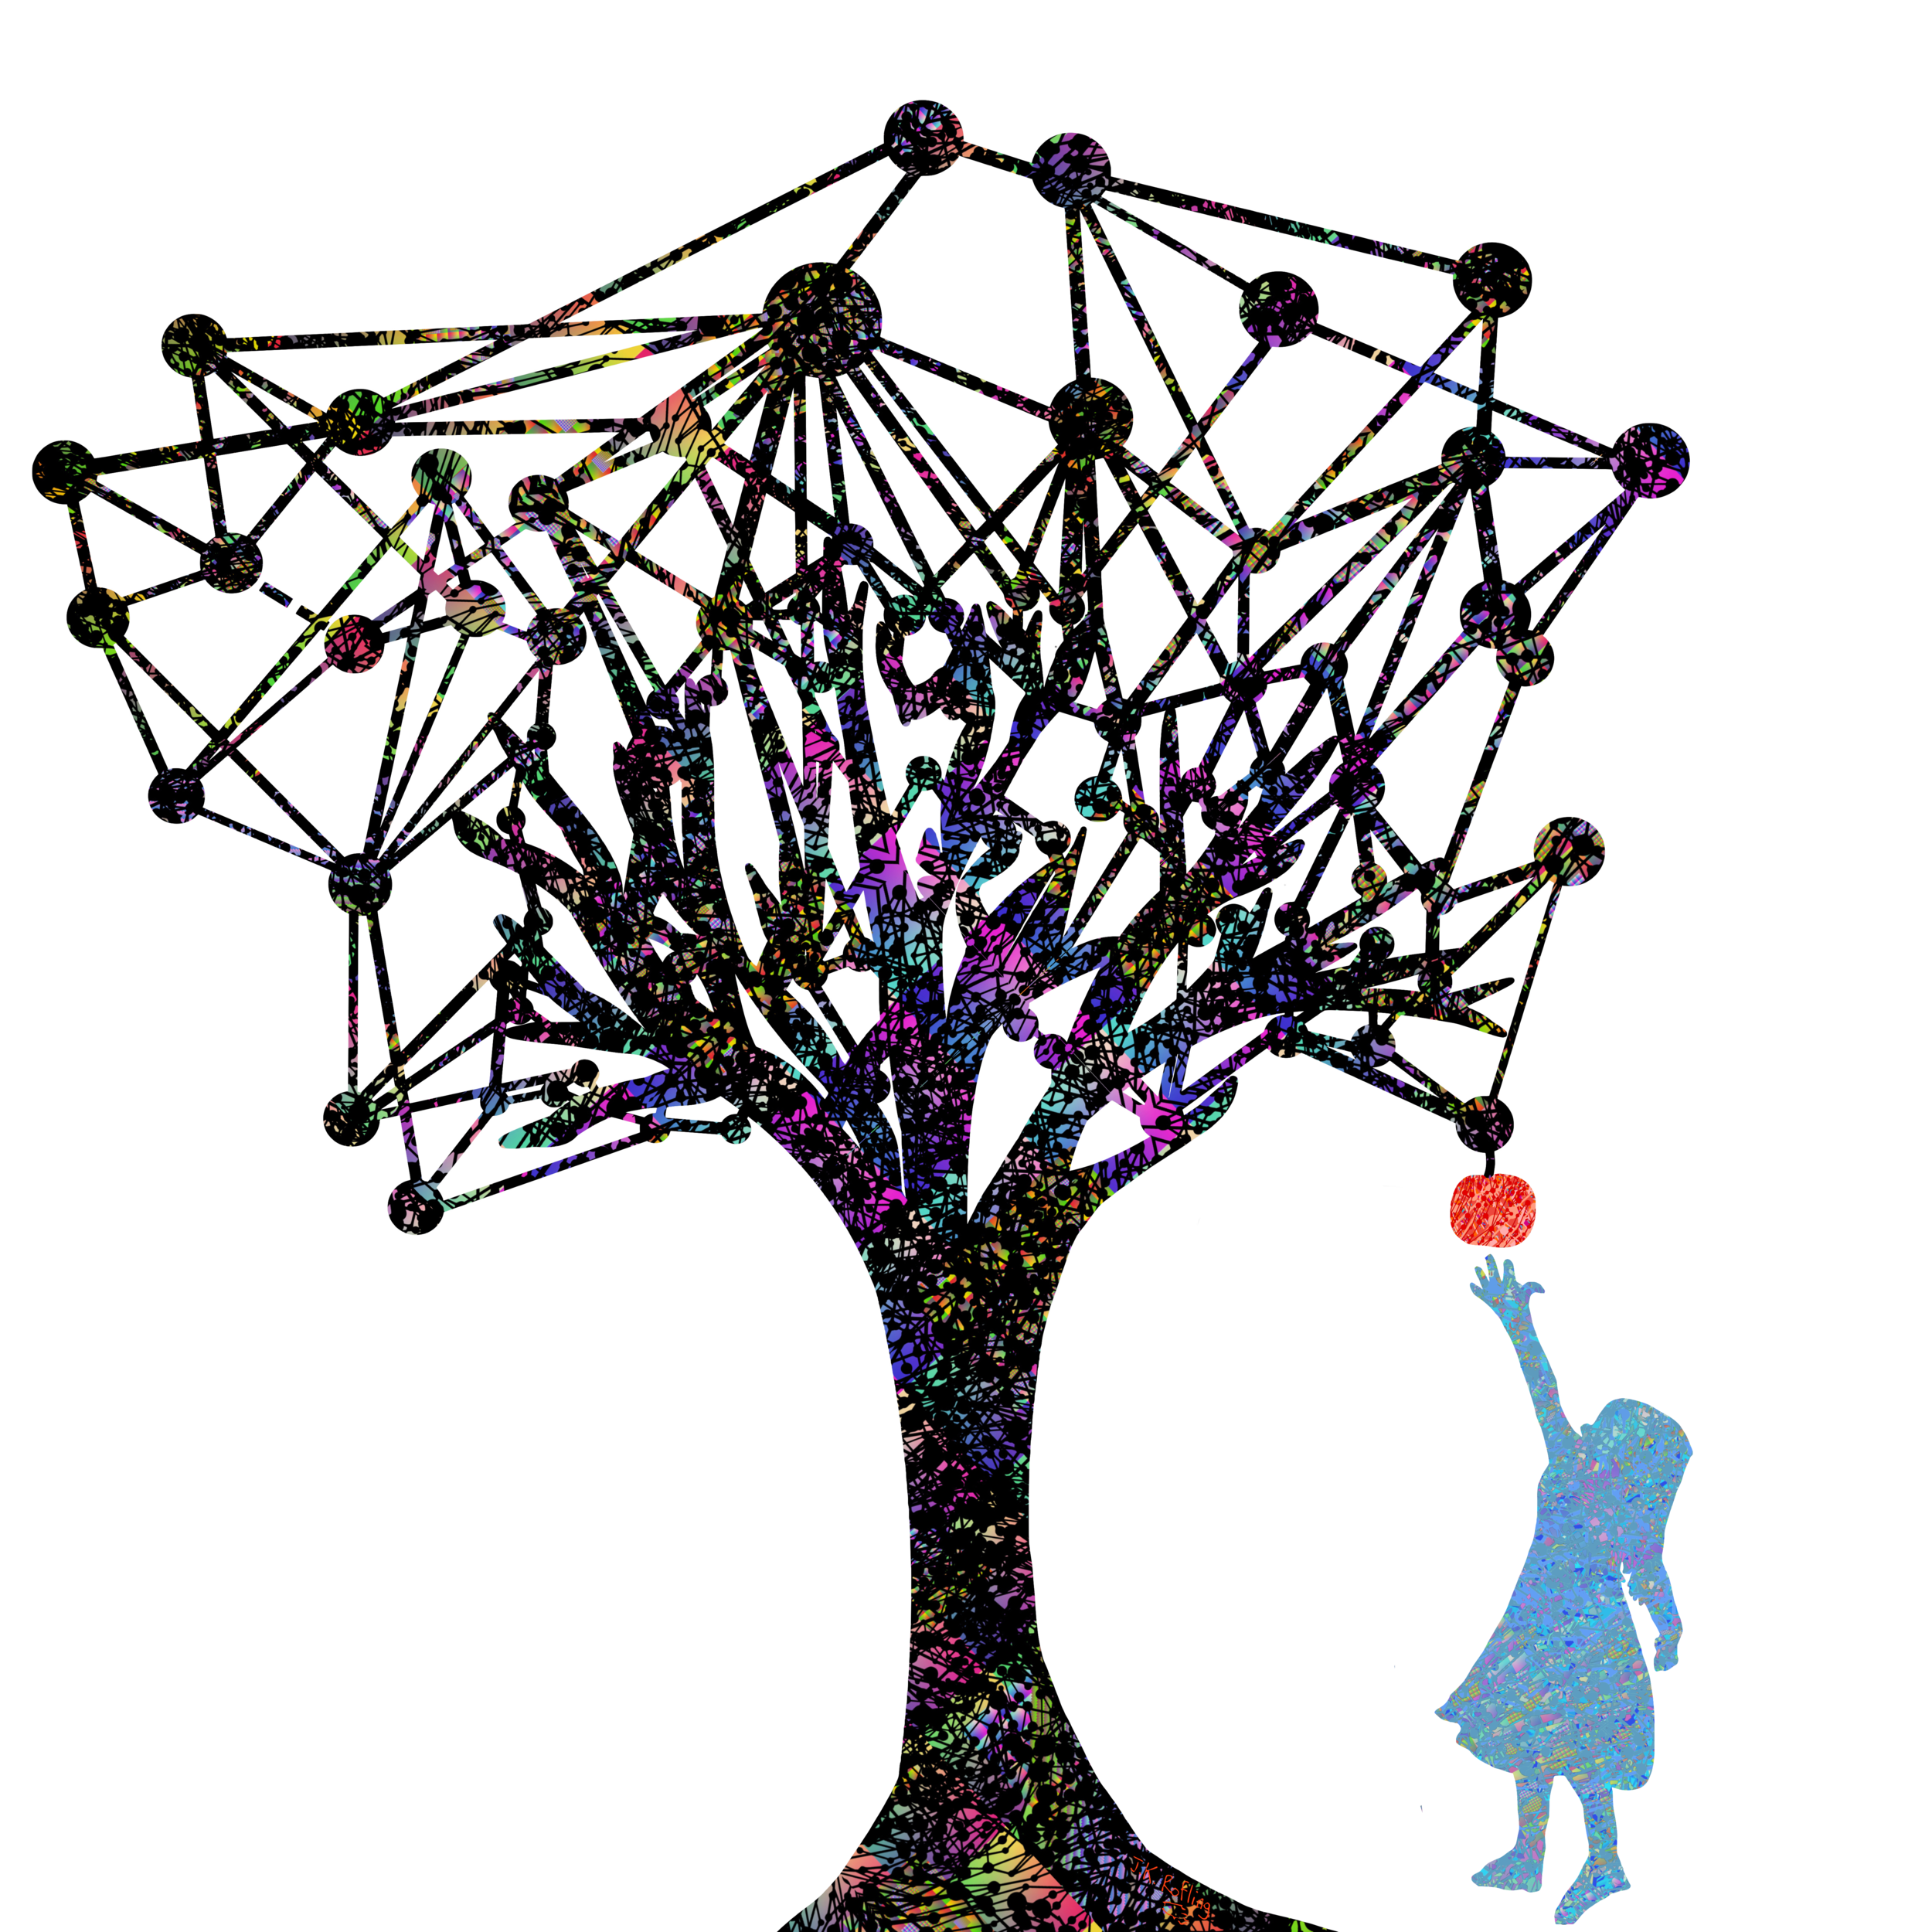 the Tree0.png